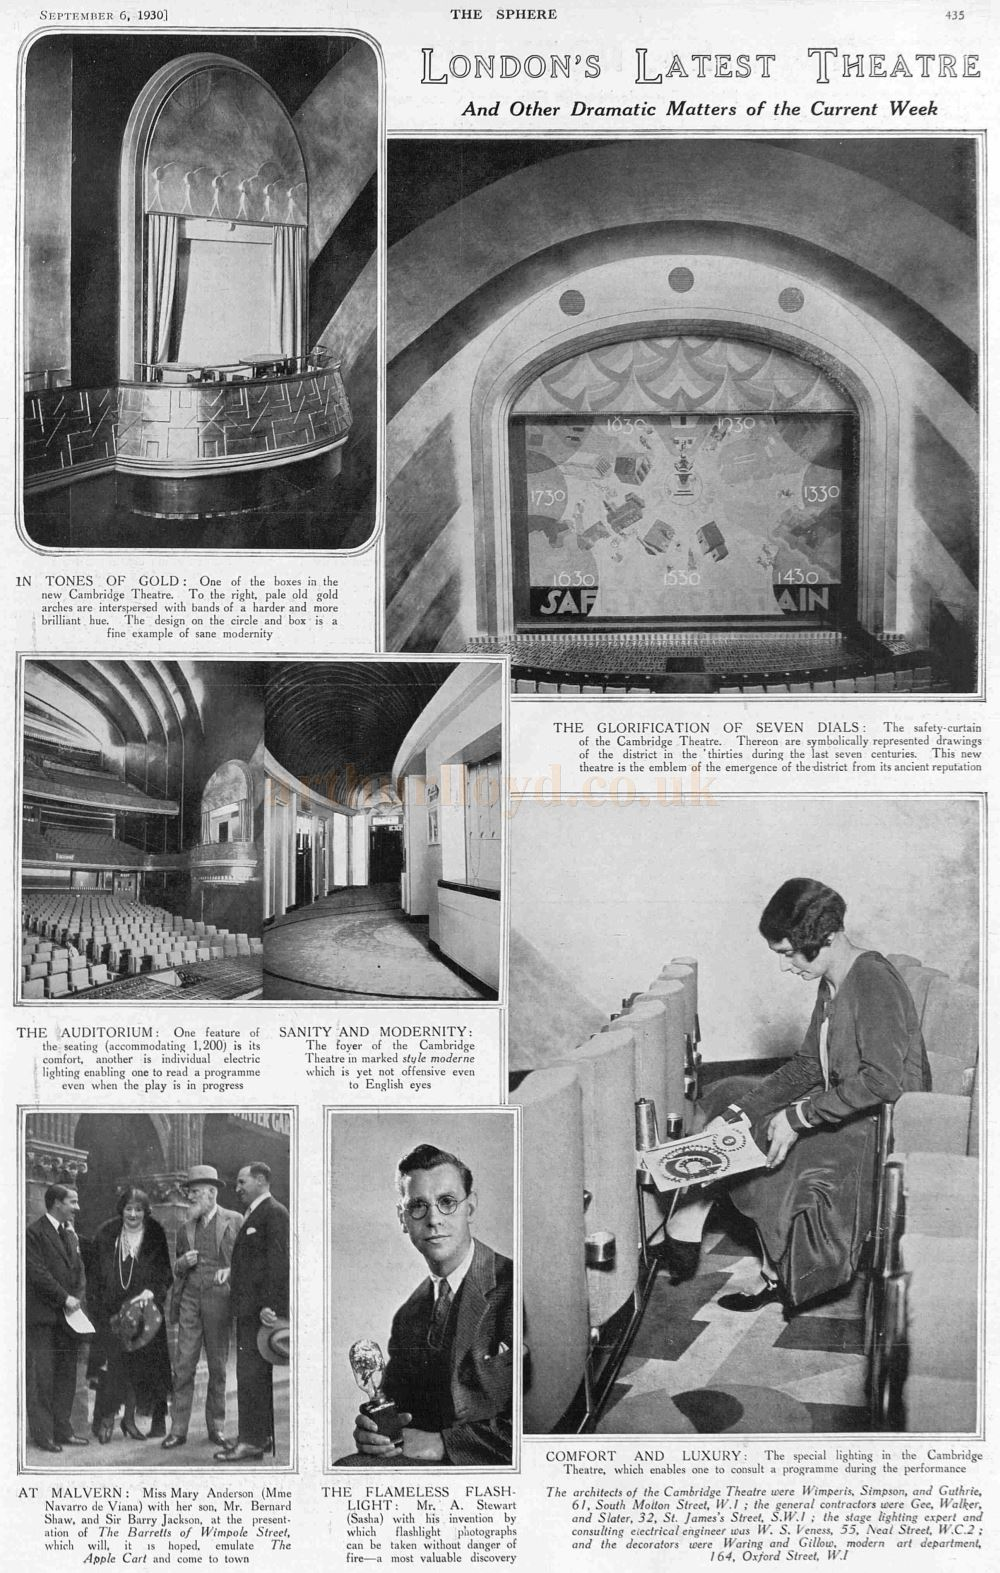 A Full Page Article on the new Cambridge Theatre - From The Sphere, 6th September 1930.